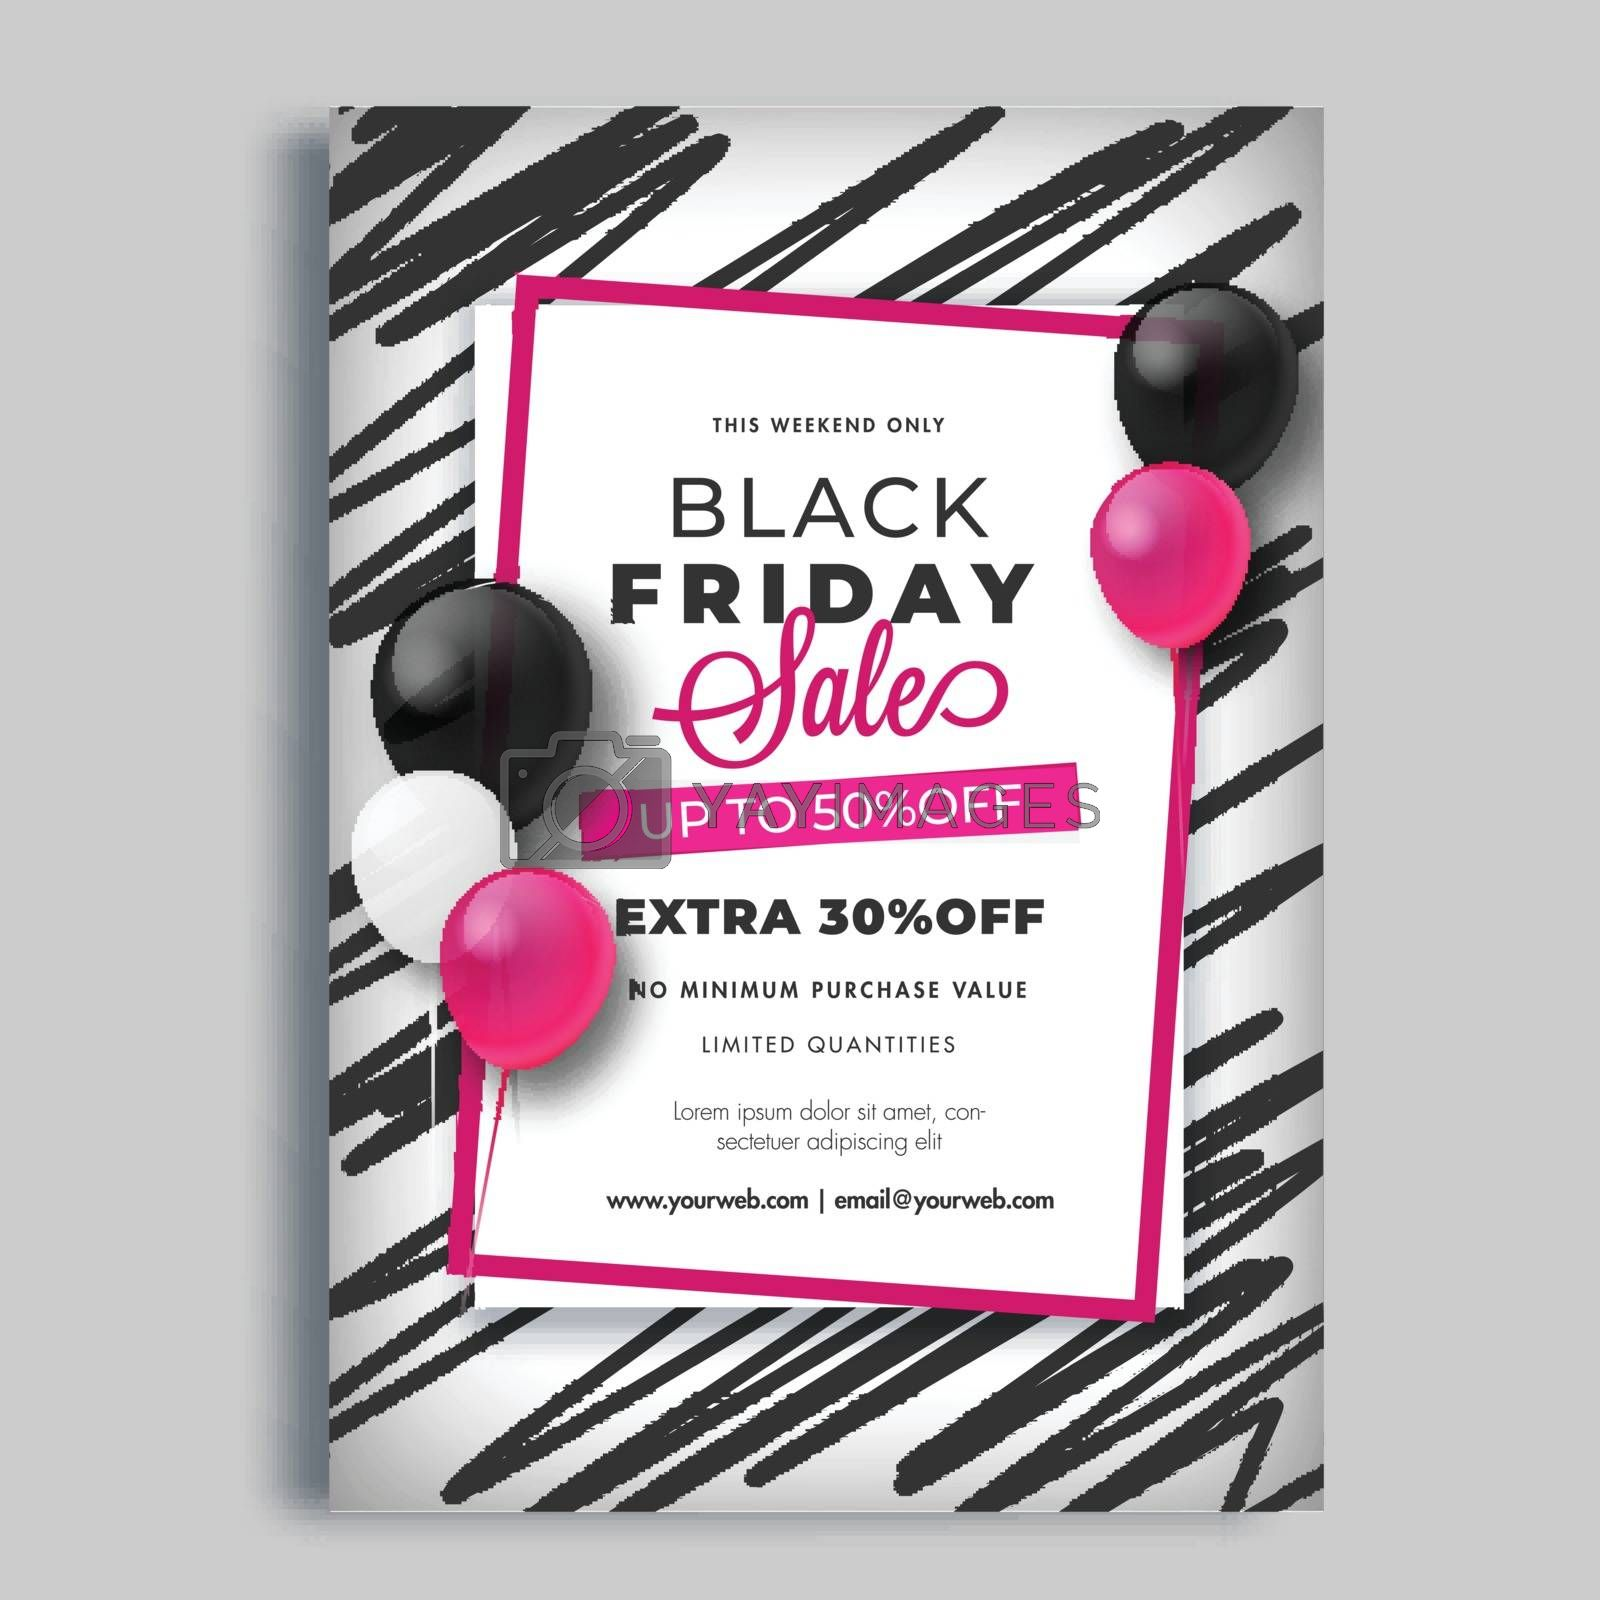 Advertising template or flyer design with best discount offer for Black Friday Sale.